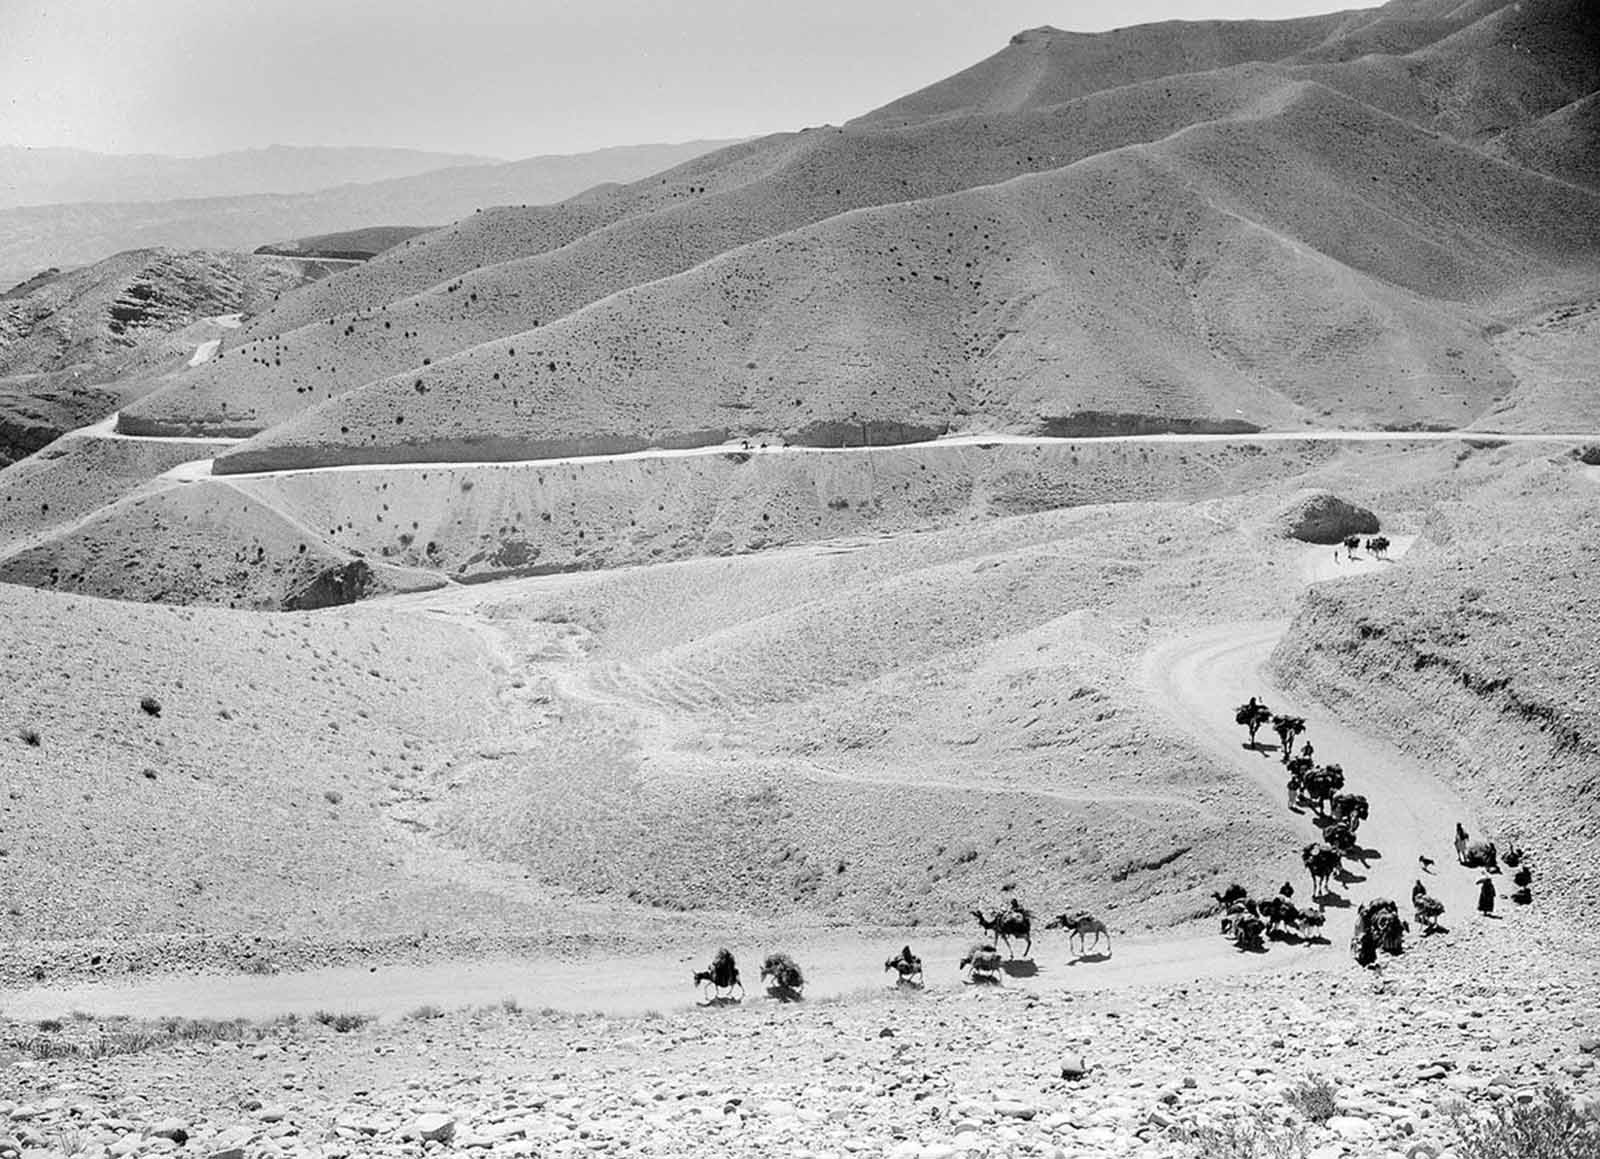 A caravan of mules and camels cross the high, winding trails of the Lataband Pass in Afghanistan on the way to Kabul, on October 8, 1949.